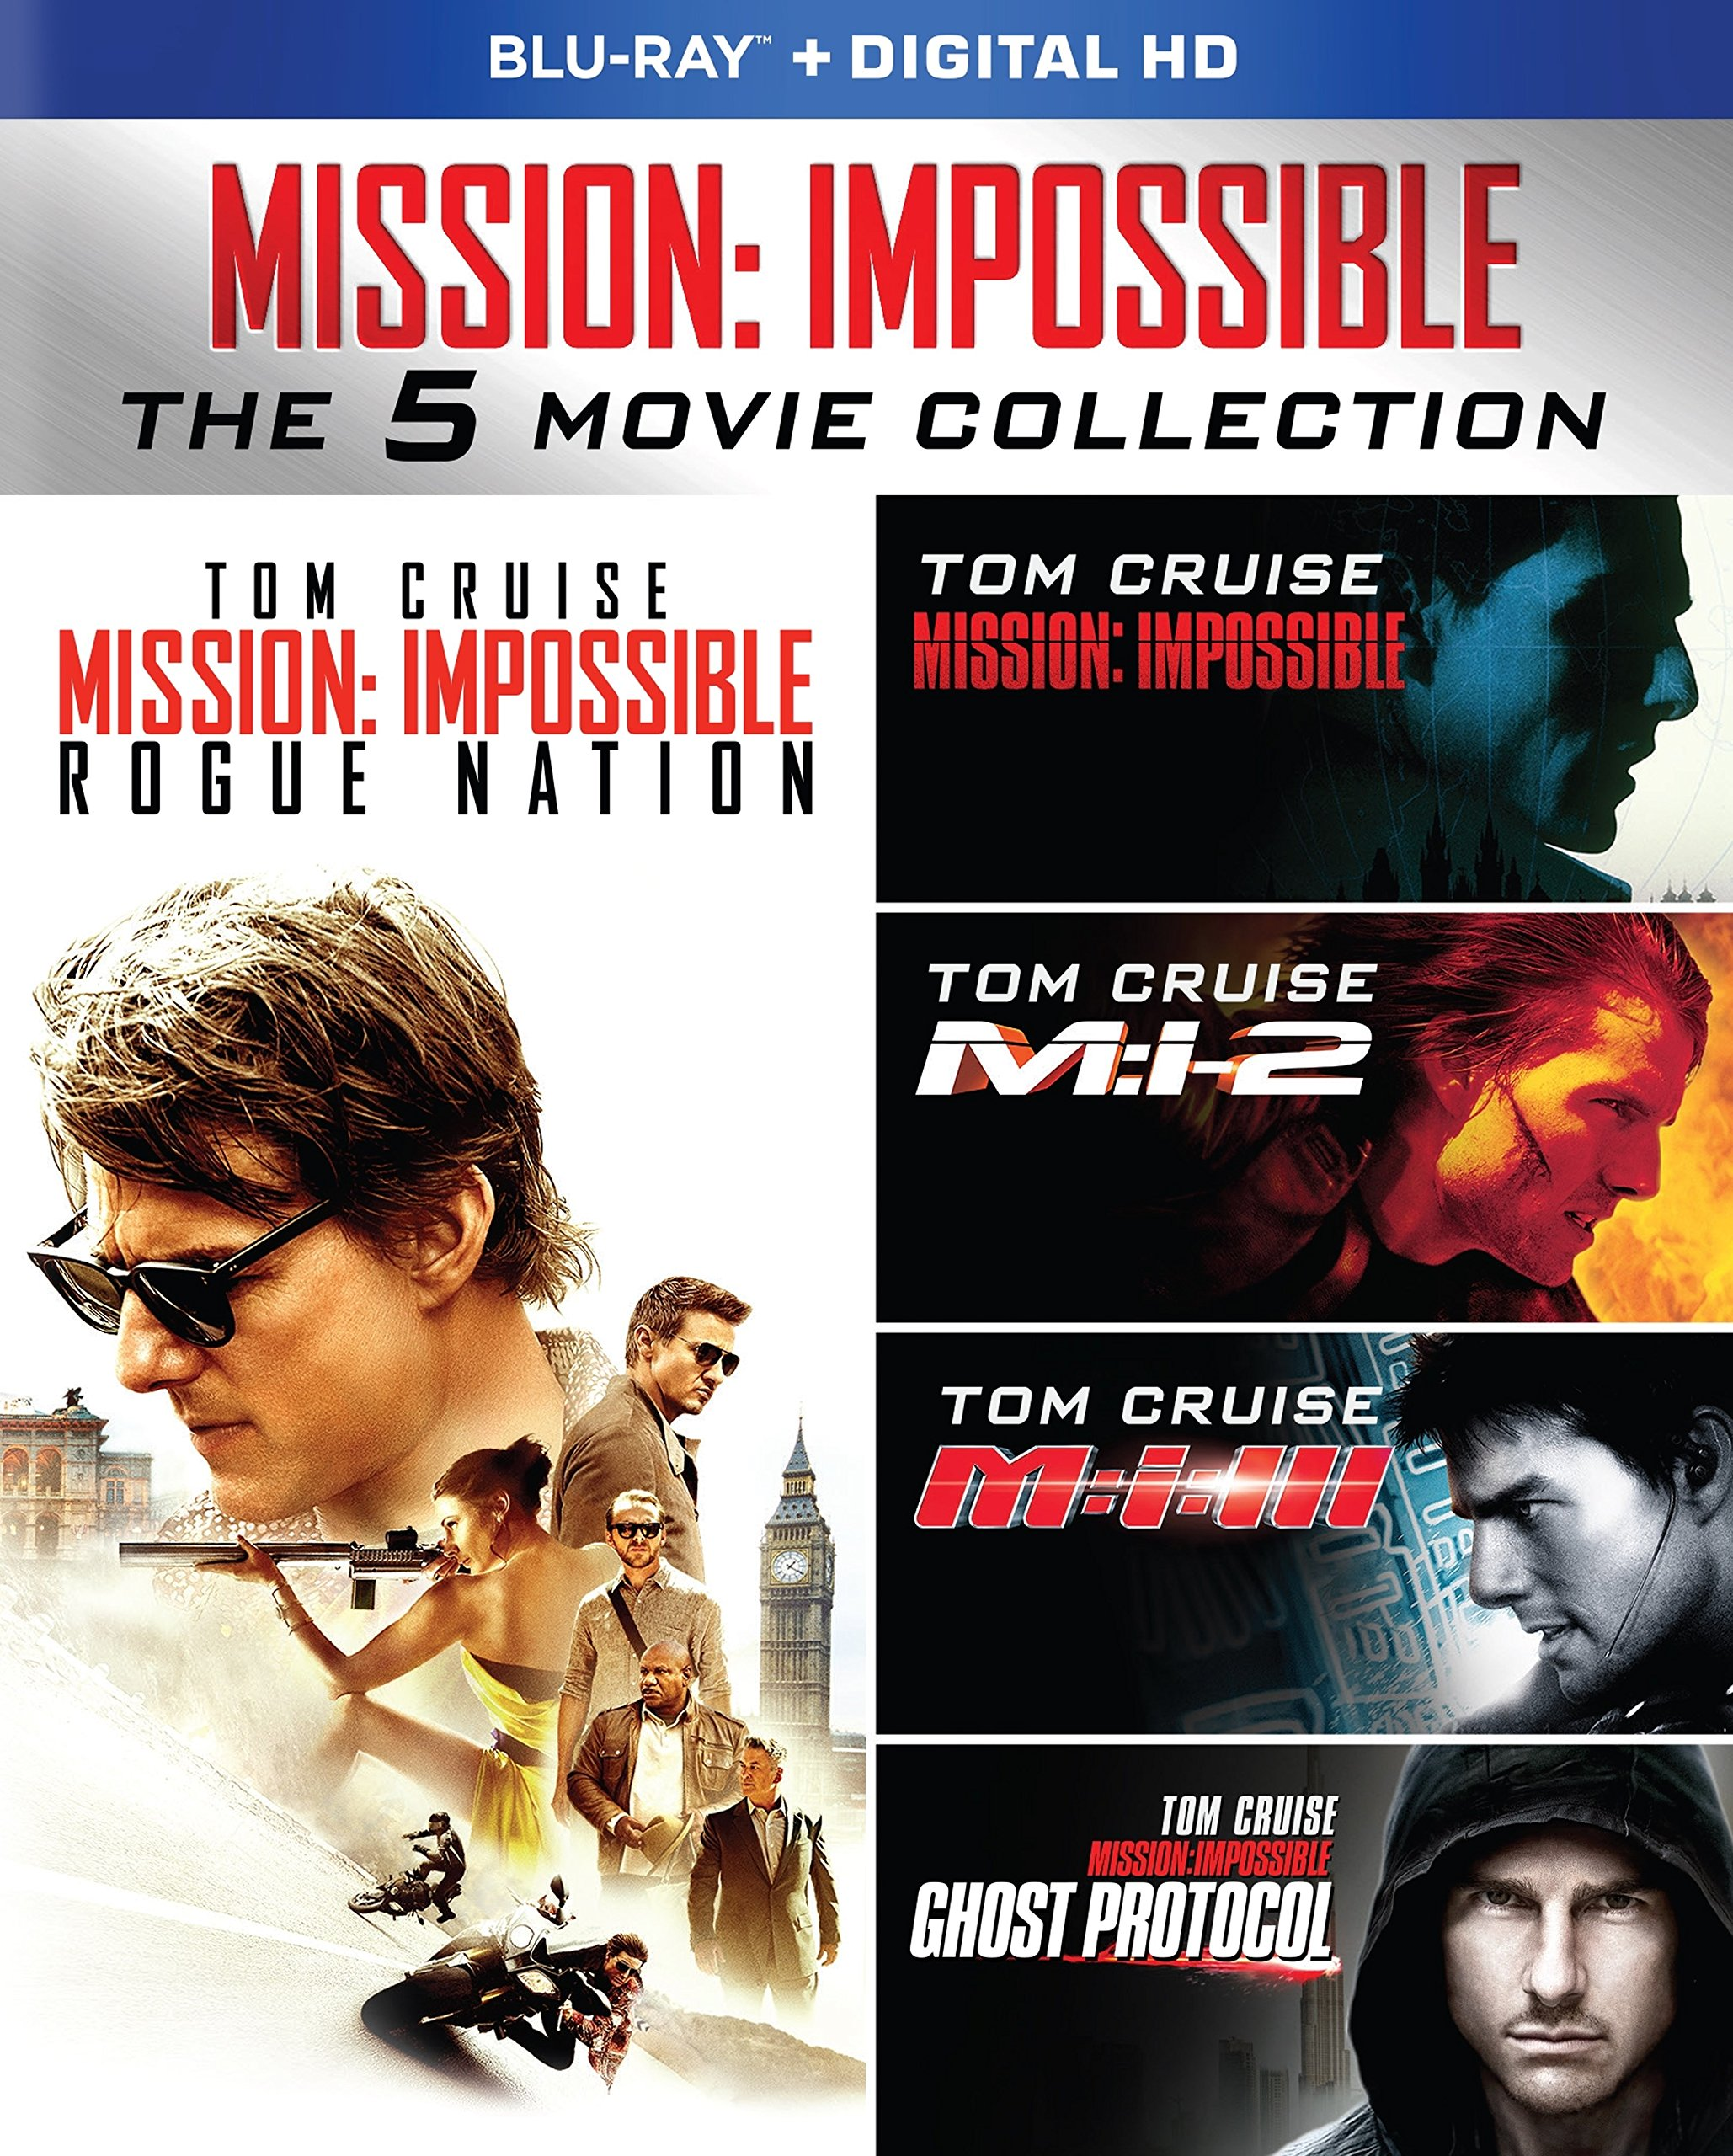 Blu-ray : Mission: Impossible 5-Movie Collection (Boxed Set, Slipsleeve Packaging, Digipack Packaging, Widescreen, )